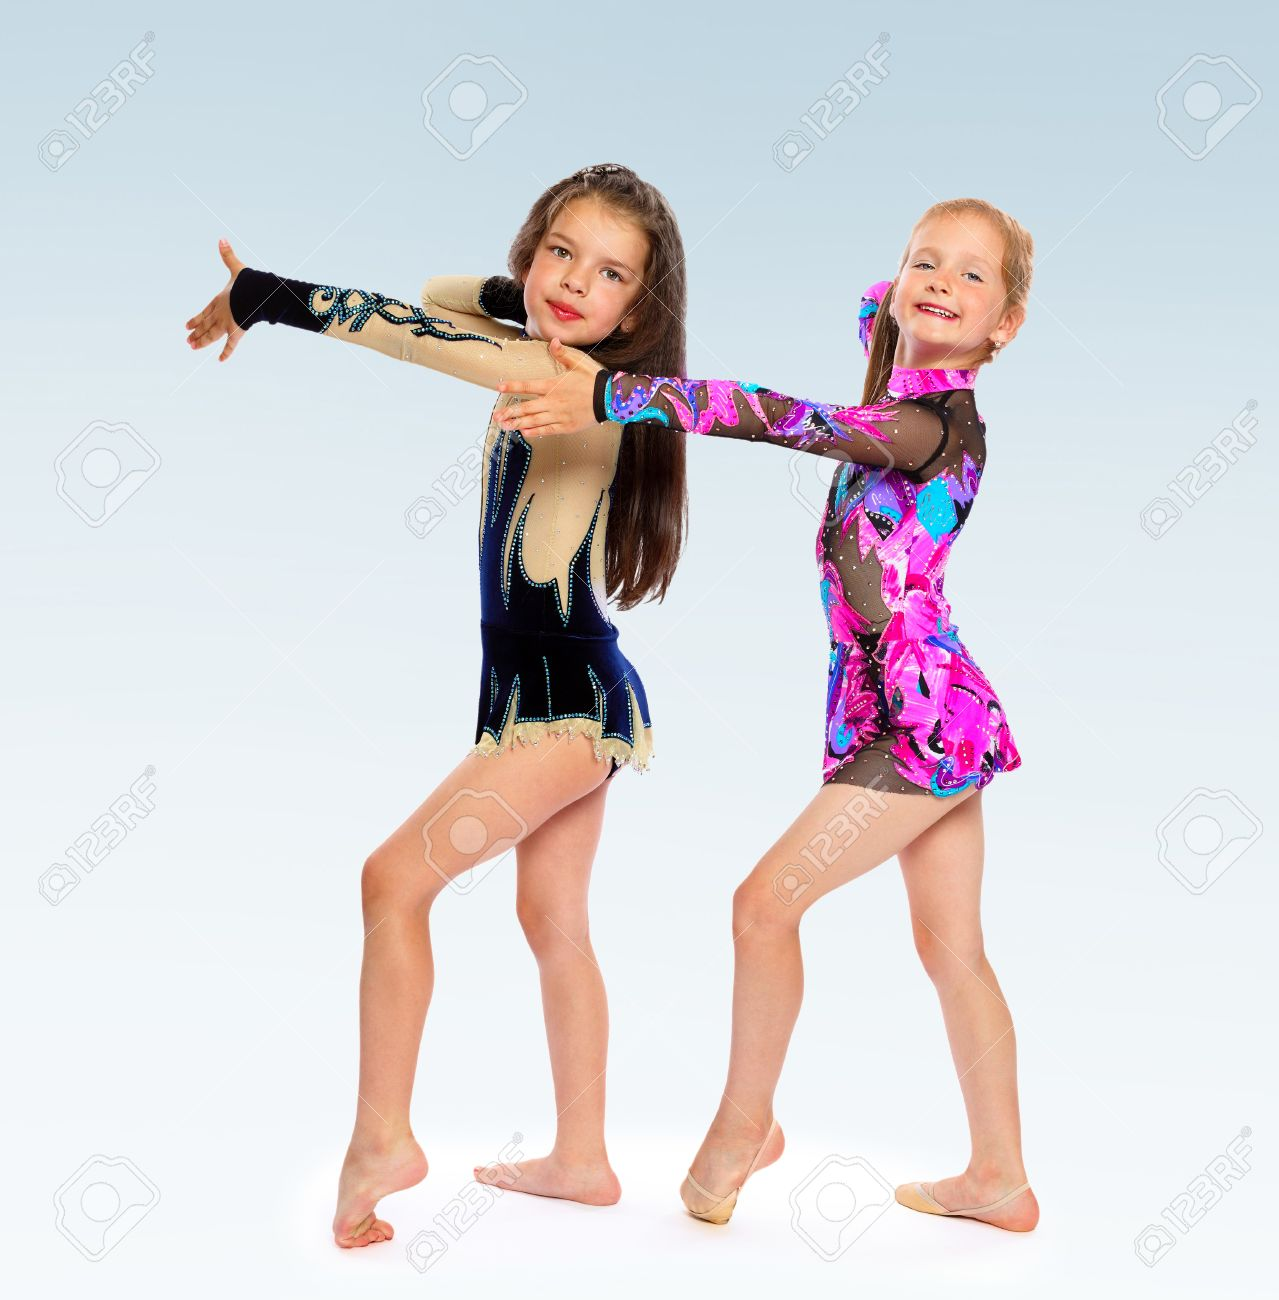 Two Girls Gymnast Gymnastic Exercises Shows Costumes Stock Photo